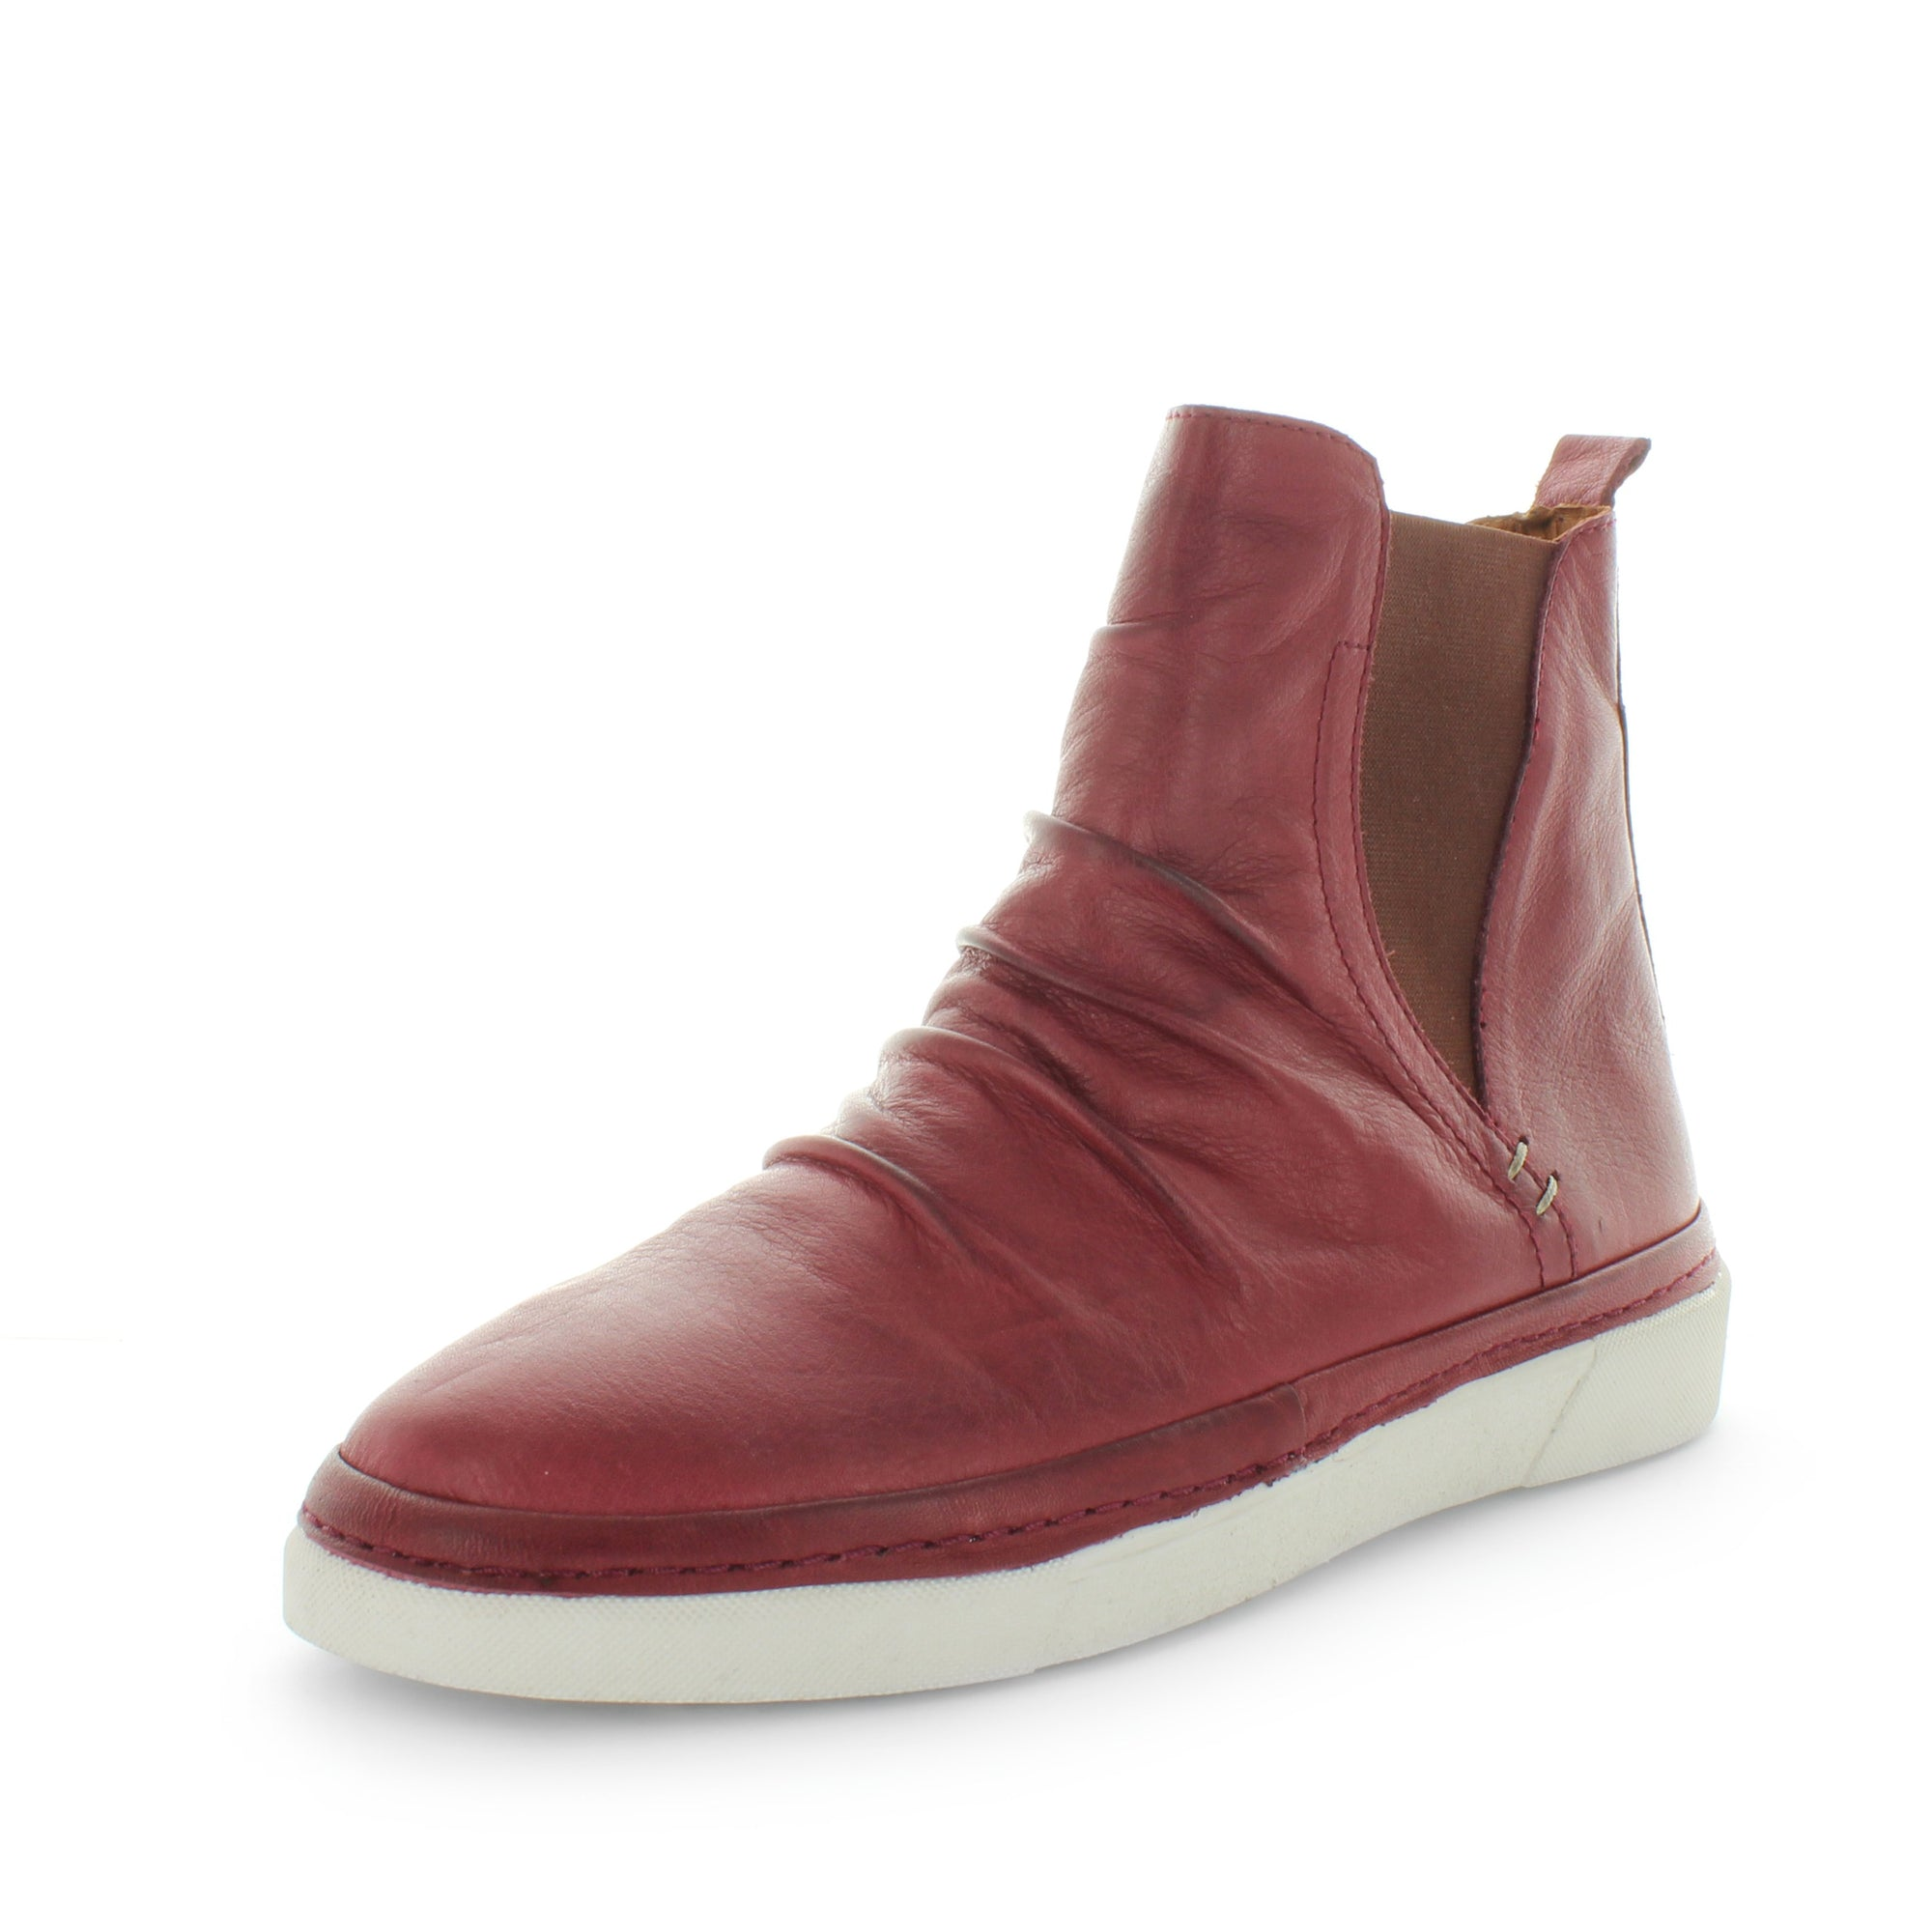 womens sneaker leather boots, womens ankle boots, leather ankle boots